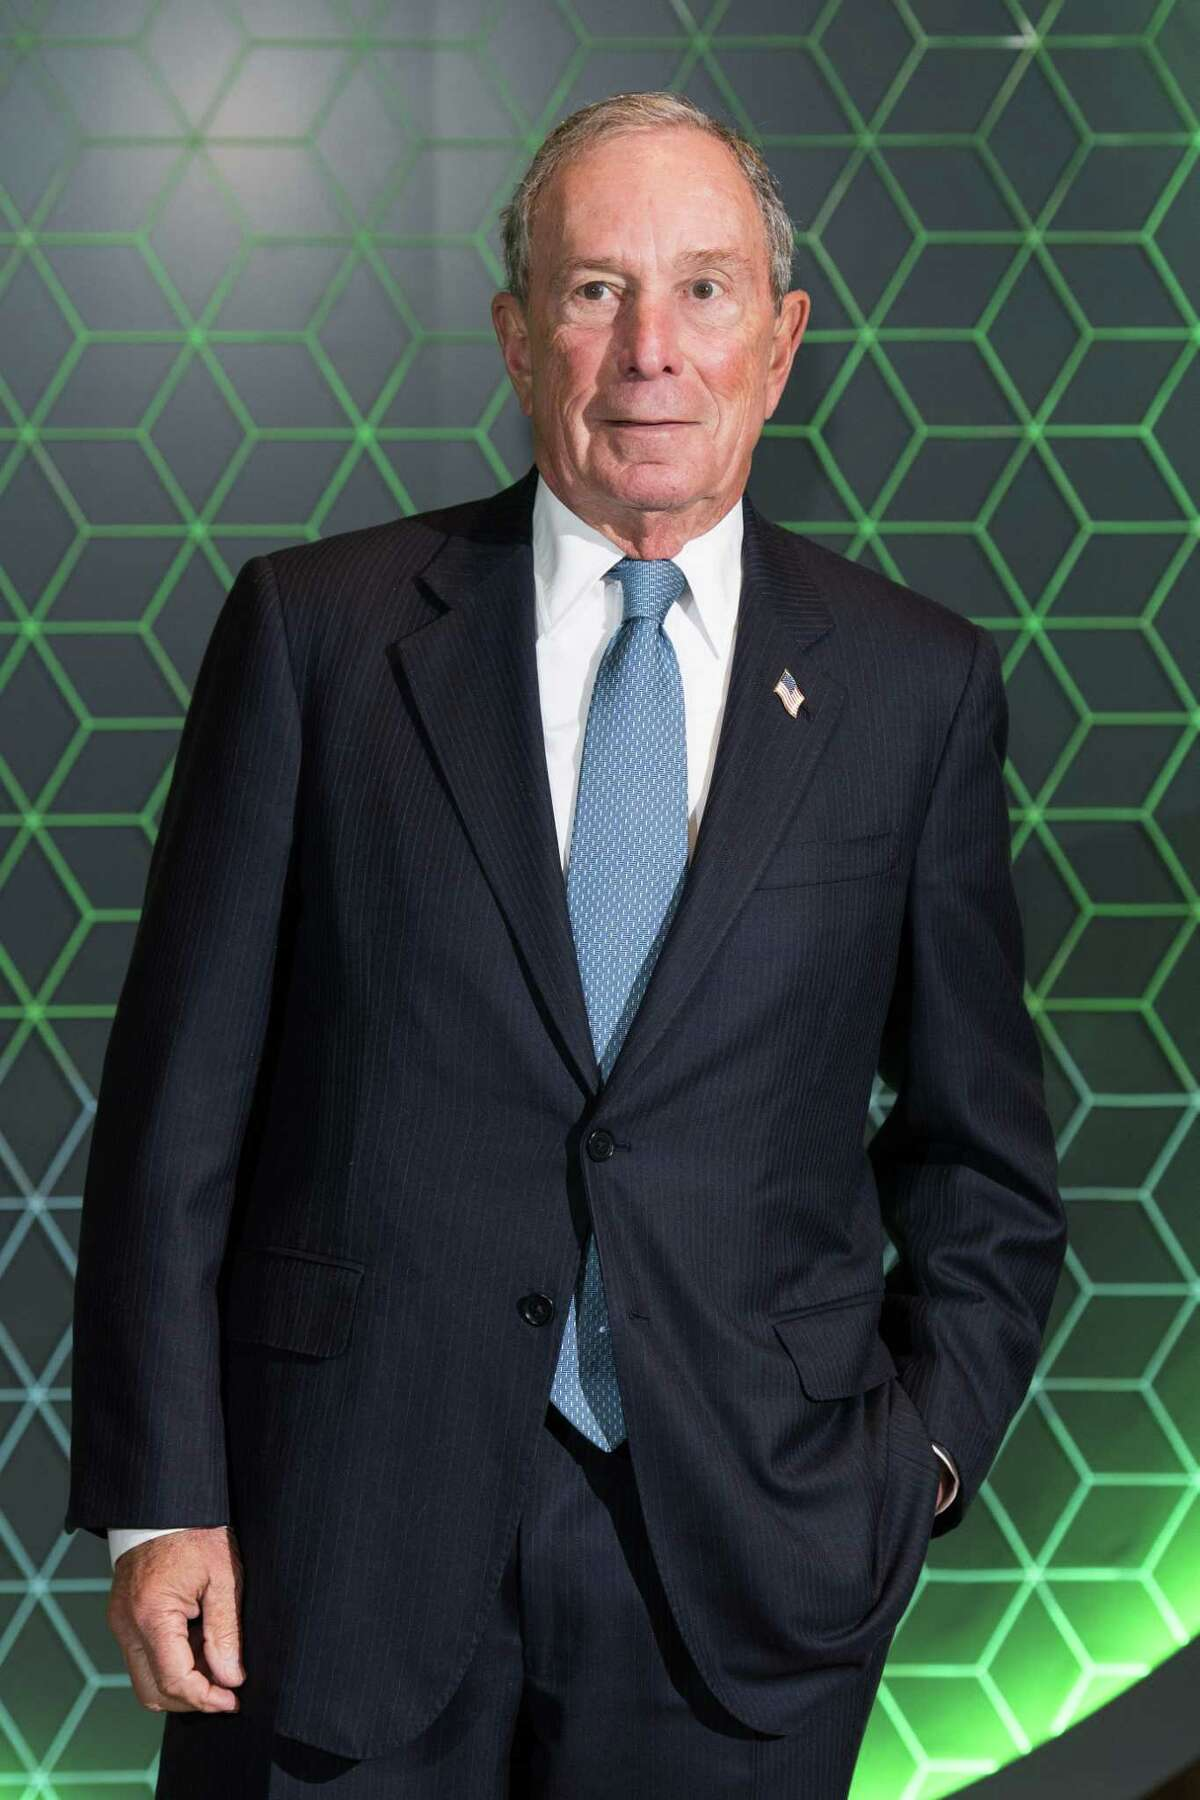 LONDON, ENGLAND - DECEMBER 11: Michael Bloomberg attends the Vanity Fair x Bloomberg climate change gala dinner at Bloomberg London on December 11, 2018 in London, England. (Photo by Jeff Spicer/Getty Images)